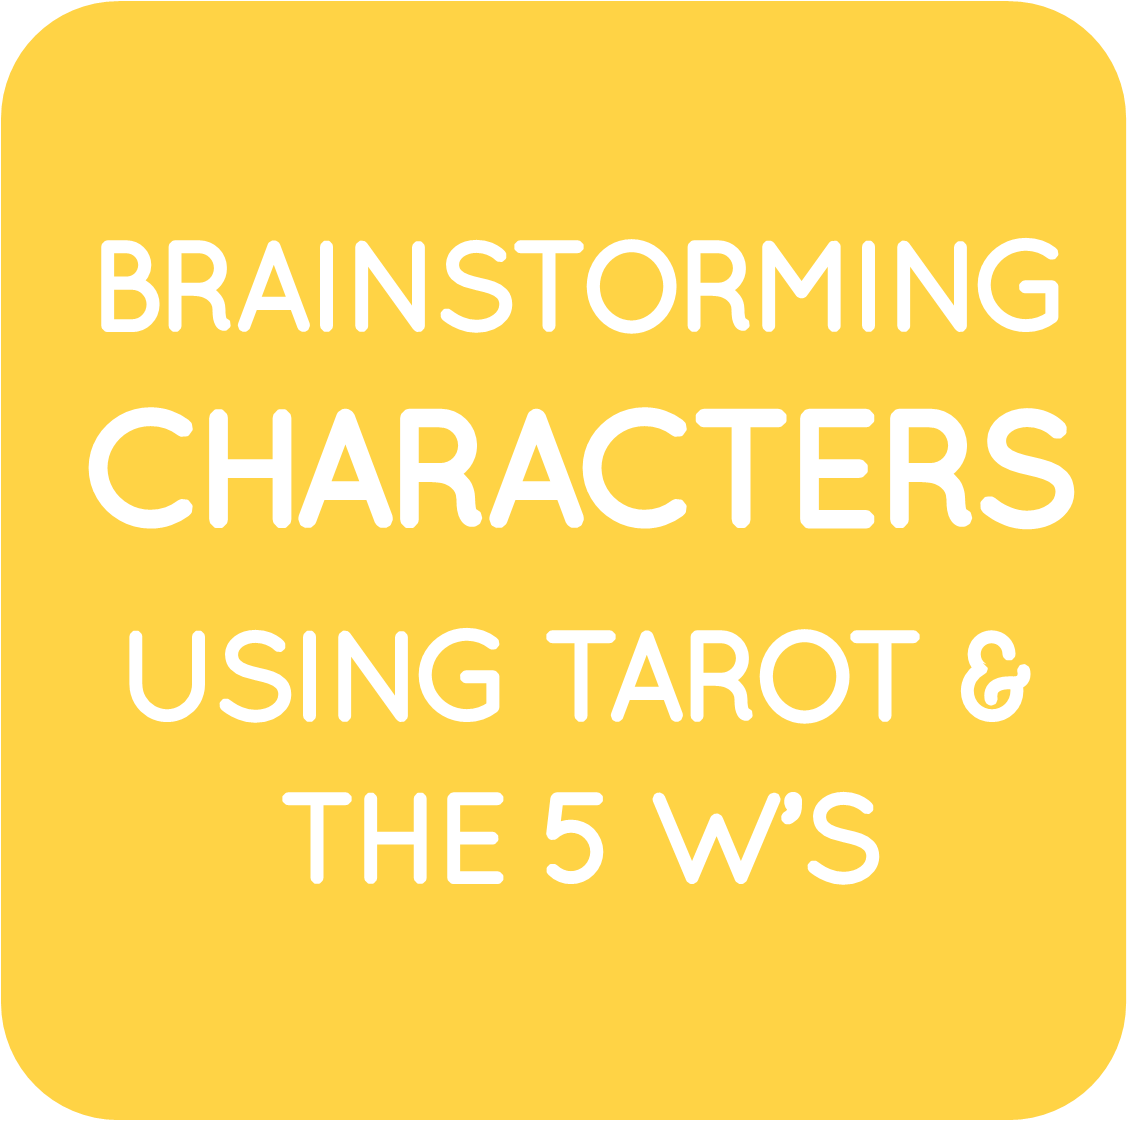 07-brainstorming character using tarot and 5 ws.png